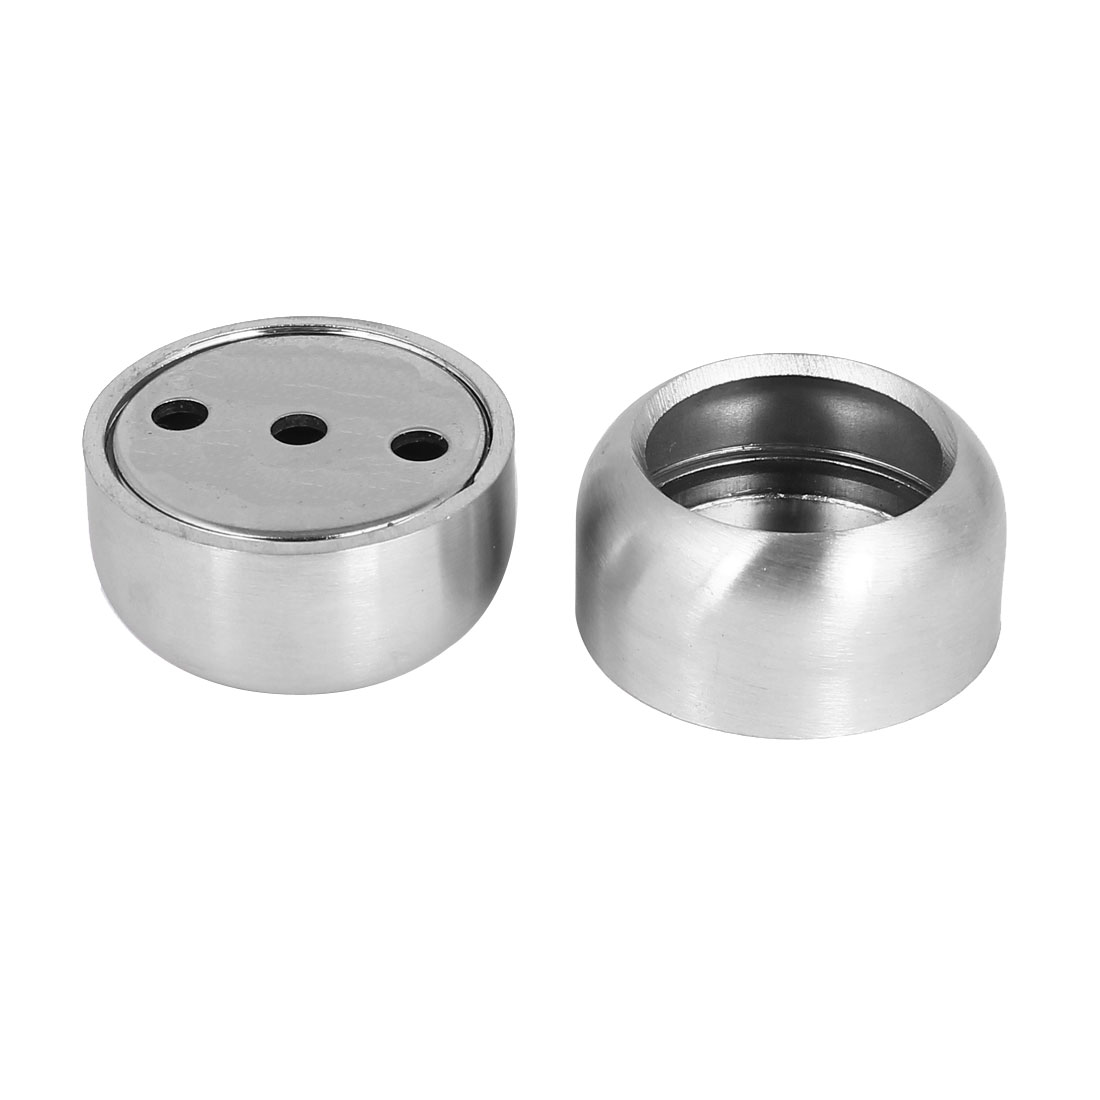 Genial 25mm Dia Stainless Steel Closet Rod Flange Round Socket Holder Silver Tone  2pcs